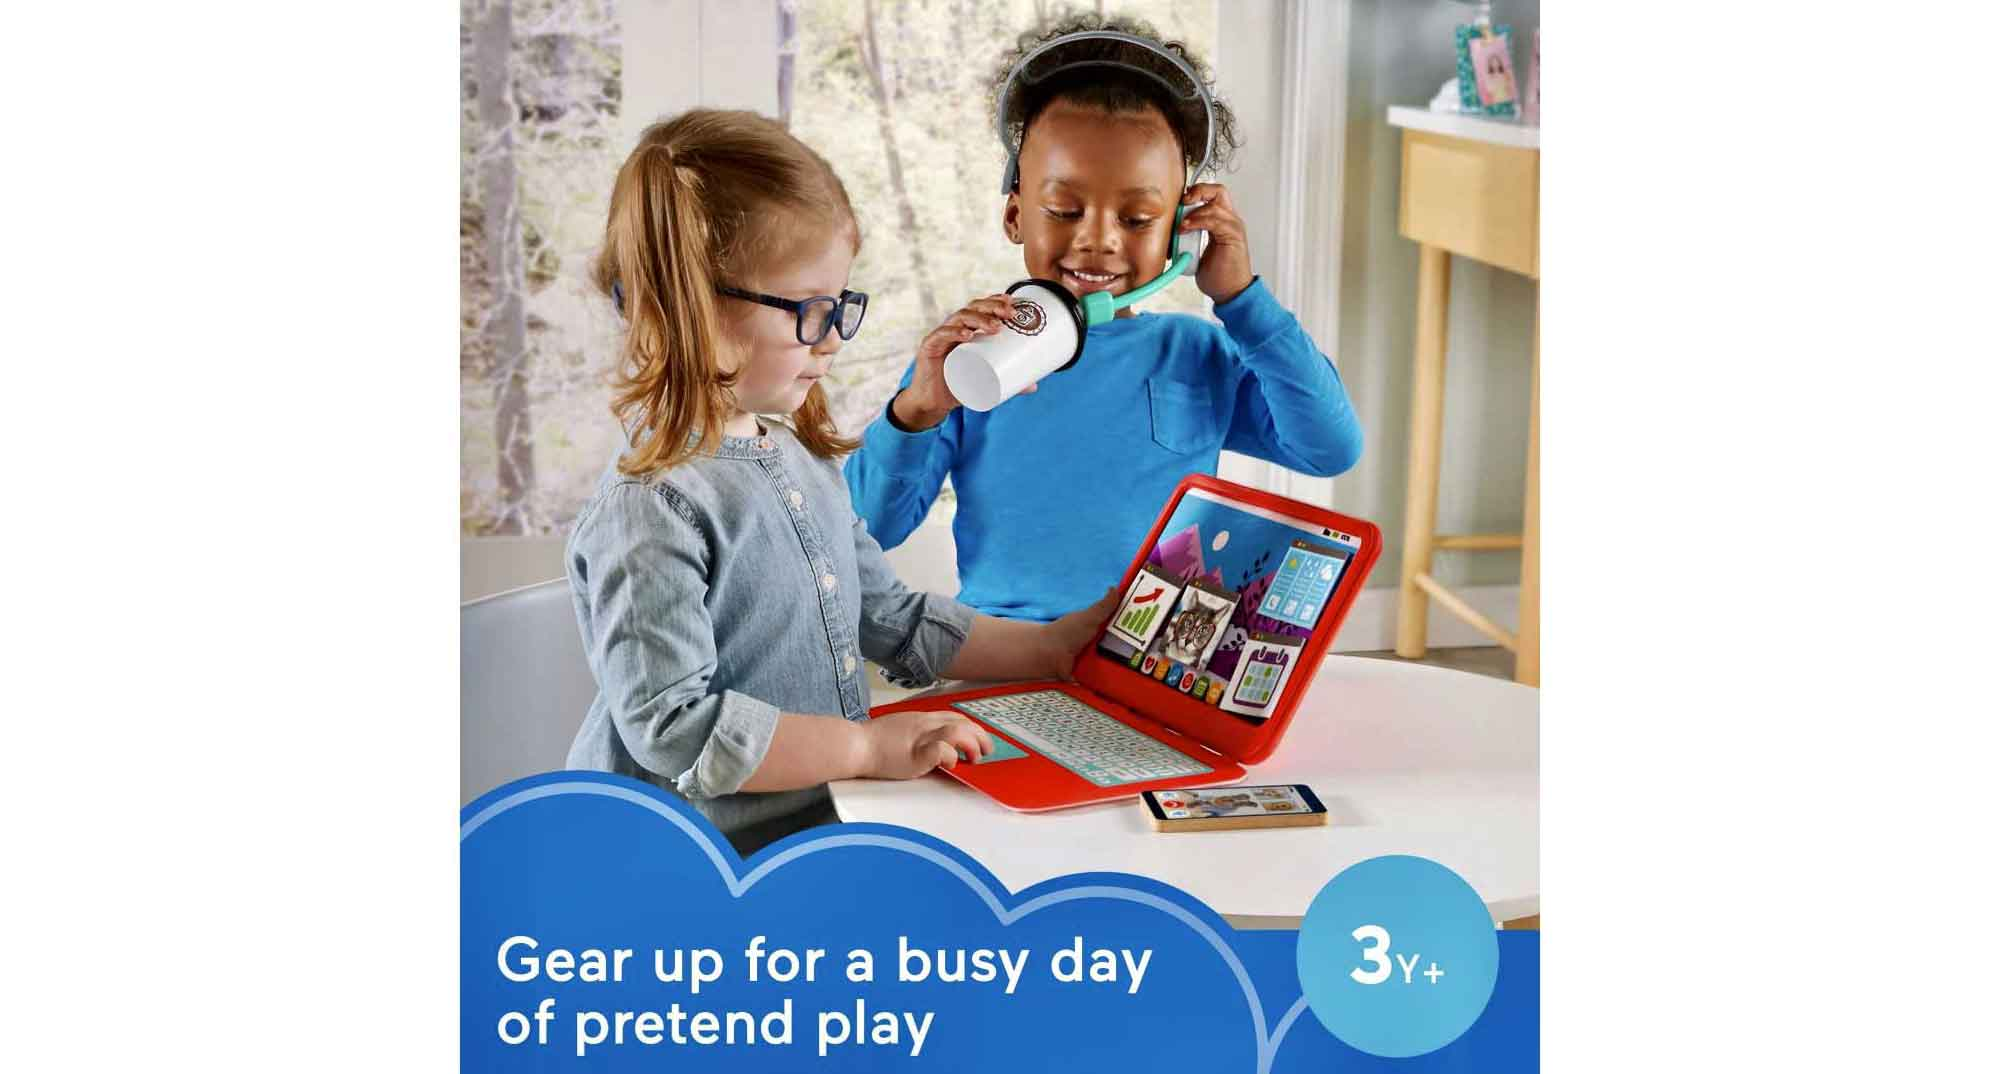 An ad for Fisher-Price My Home Office: Gear up for a busy day of pretend play